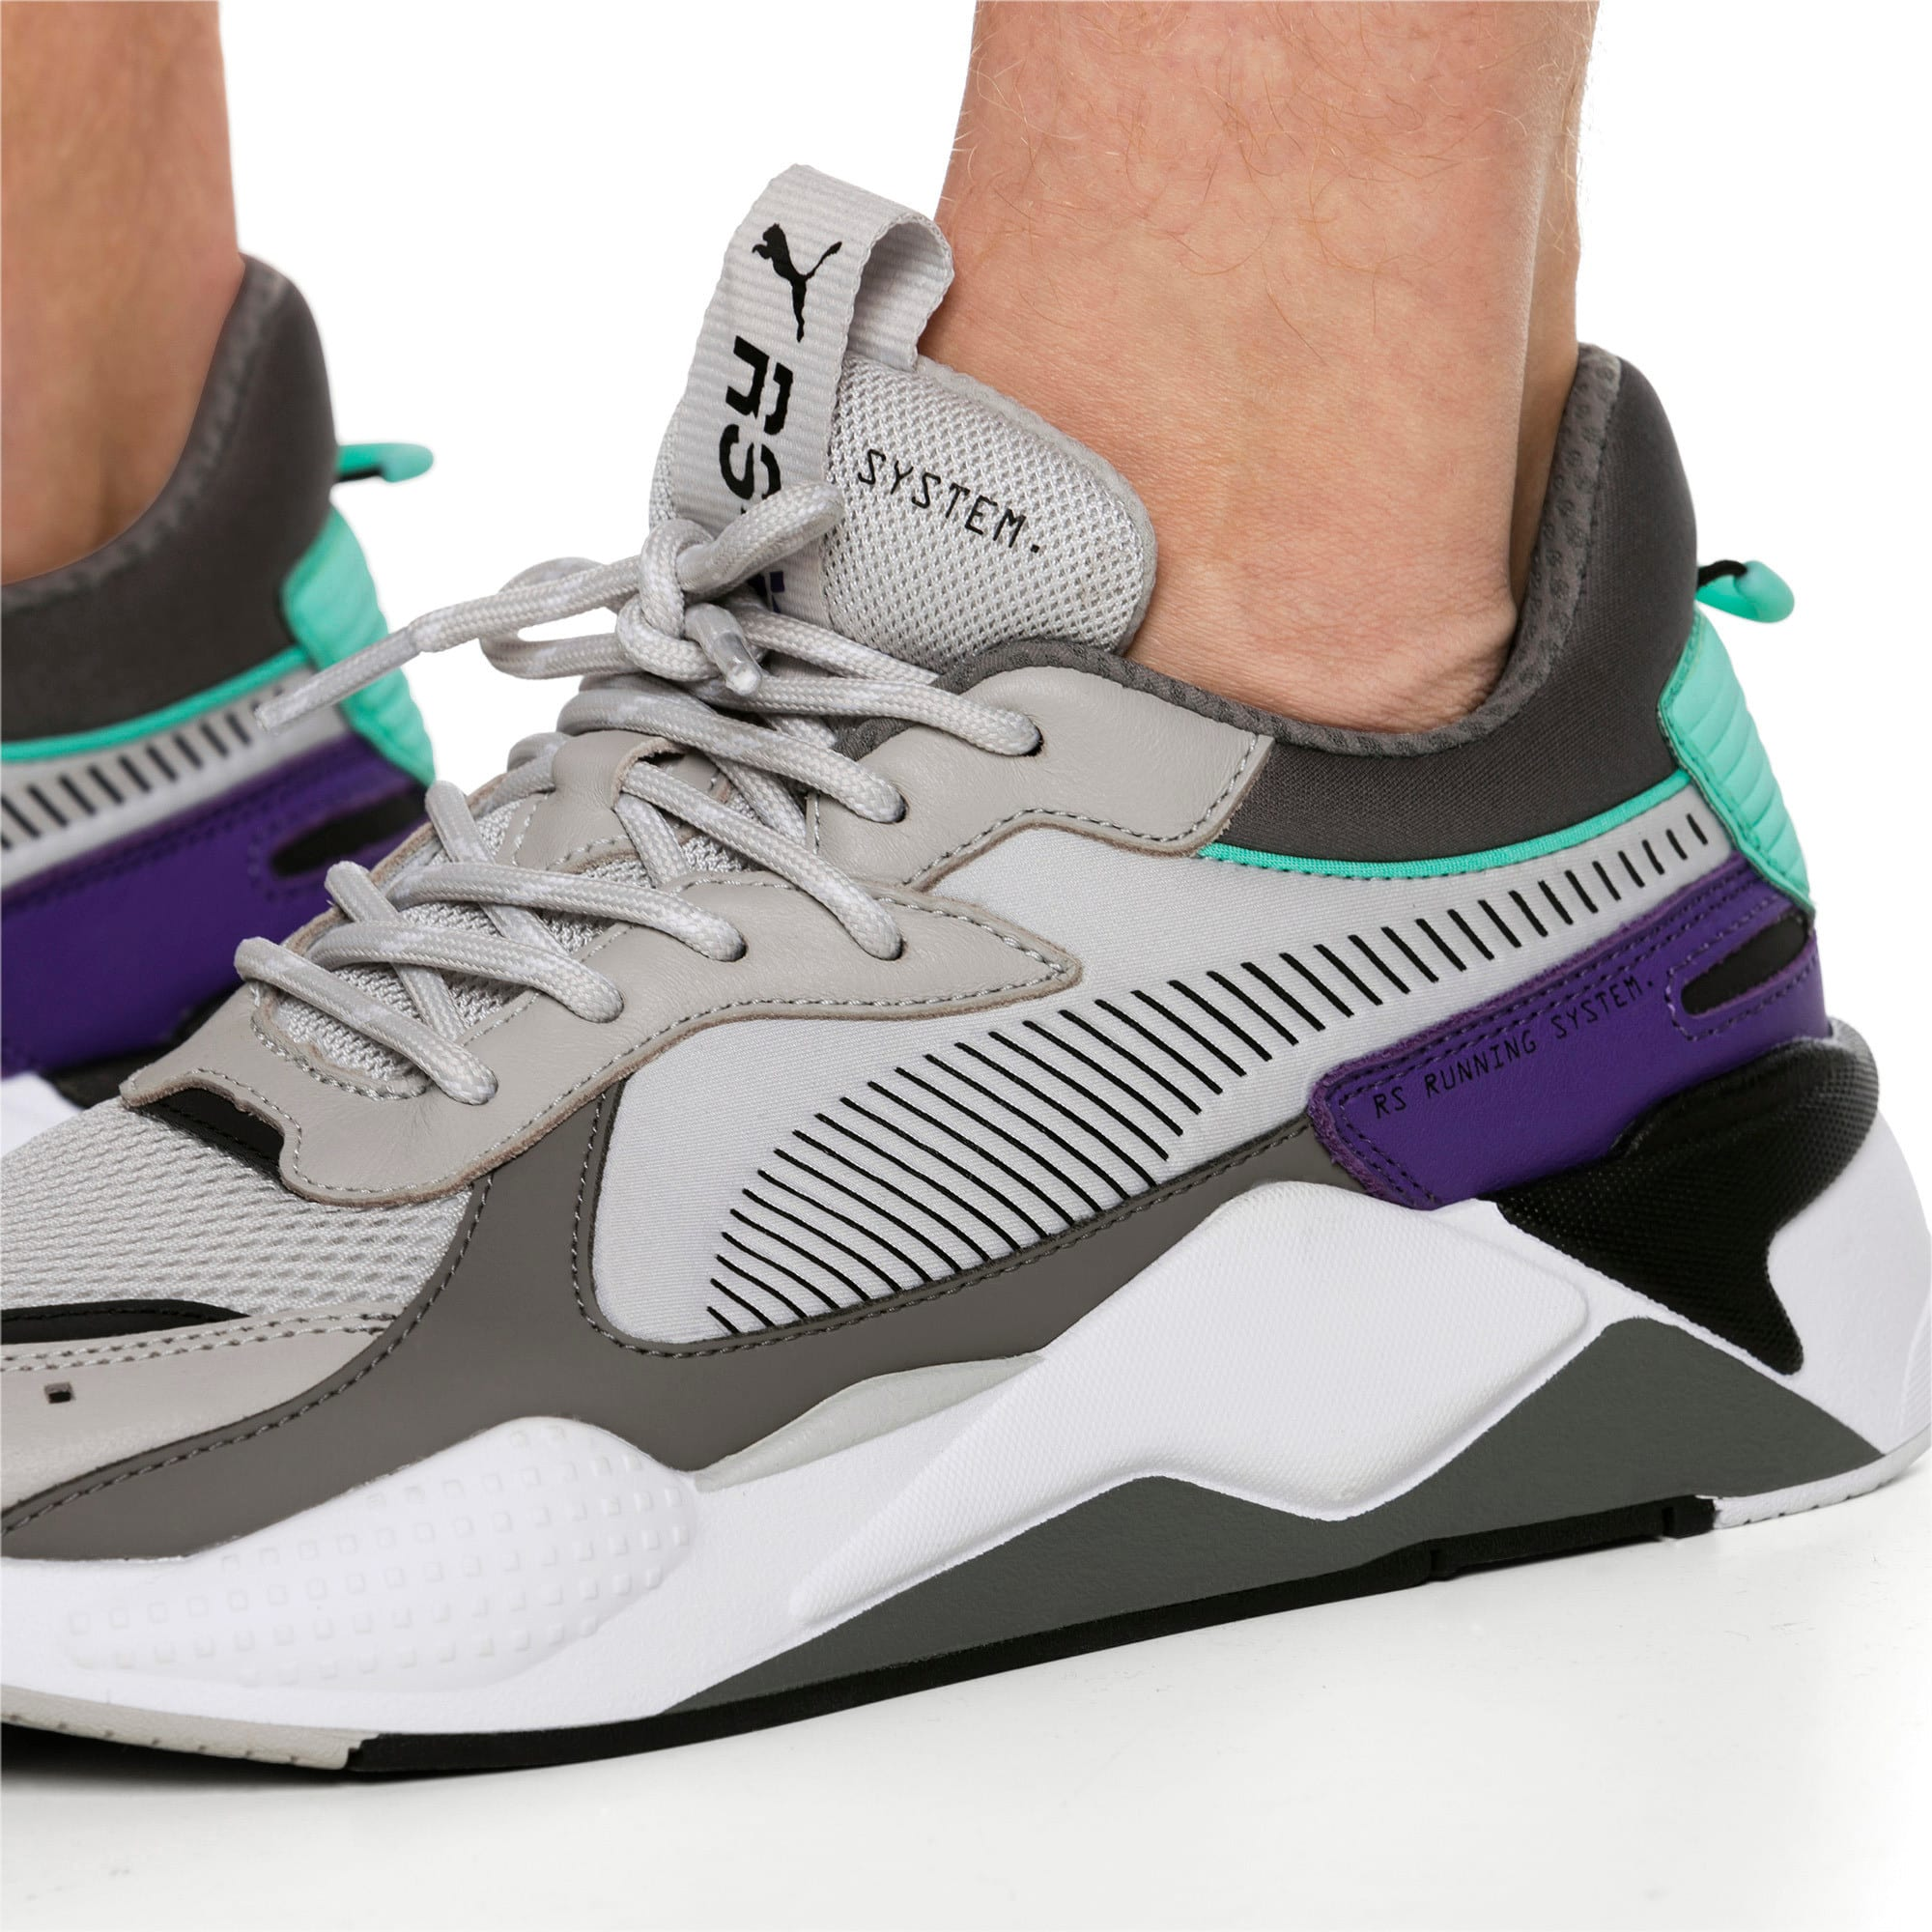 Thumbnail 3 of RS-X Tracks Trainers, Gray Violet-Charcoal Gray, medium